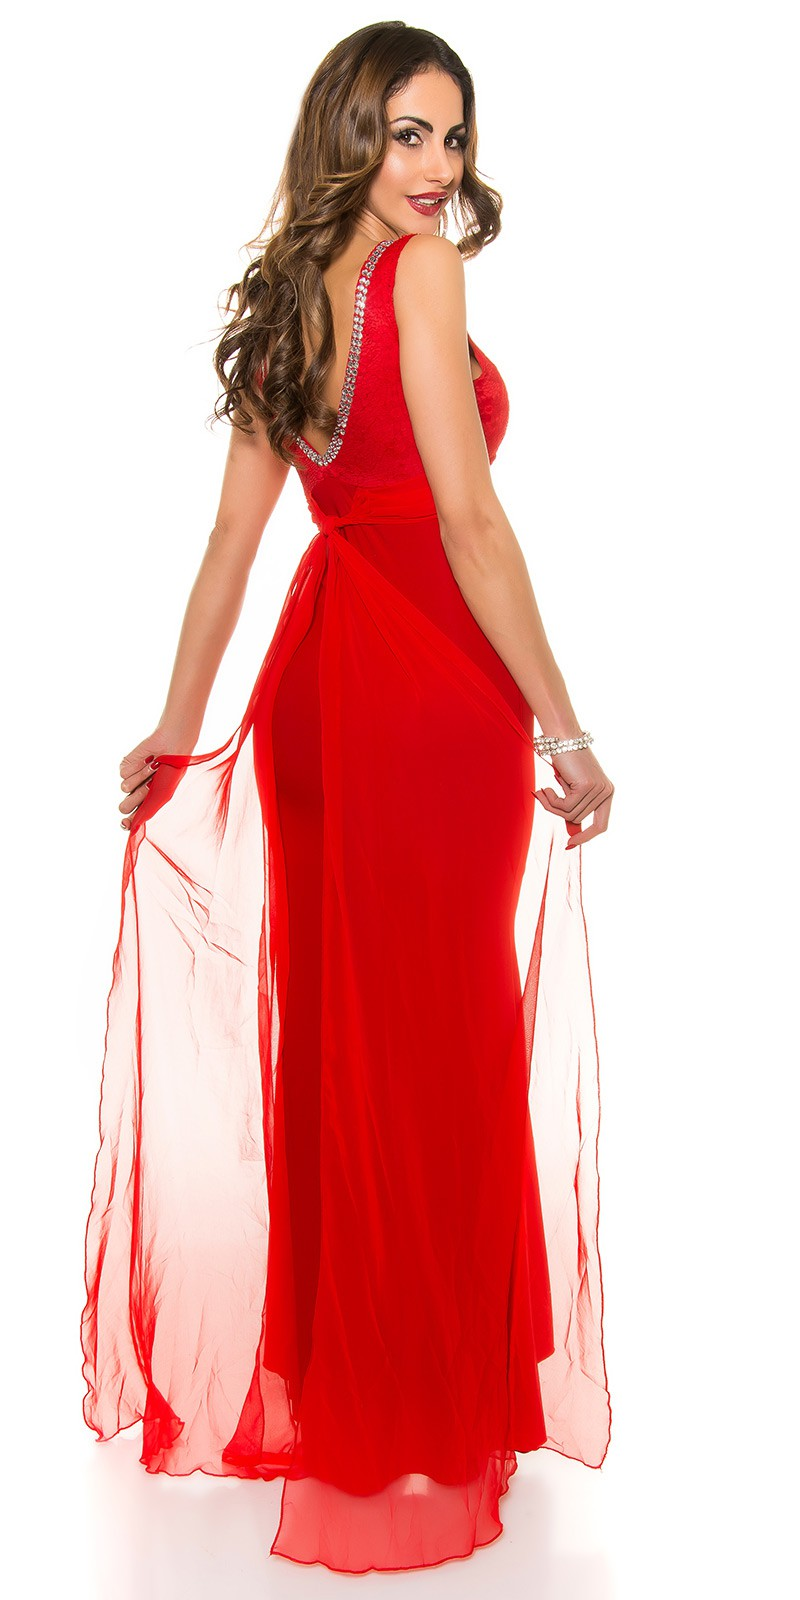 eeSexy Koucla evening dress laces  Color RED Size S 0000K9153 ROT 6 ·  Cervene dlhe spolocenske saty ead1626d1fa